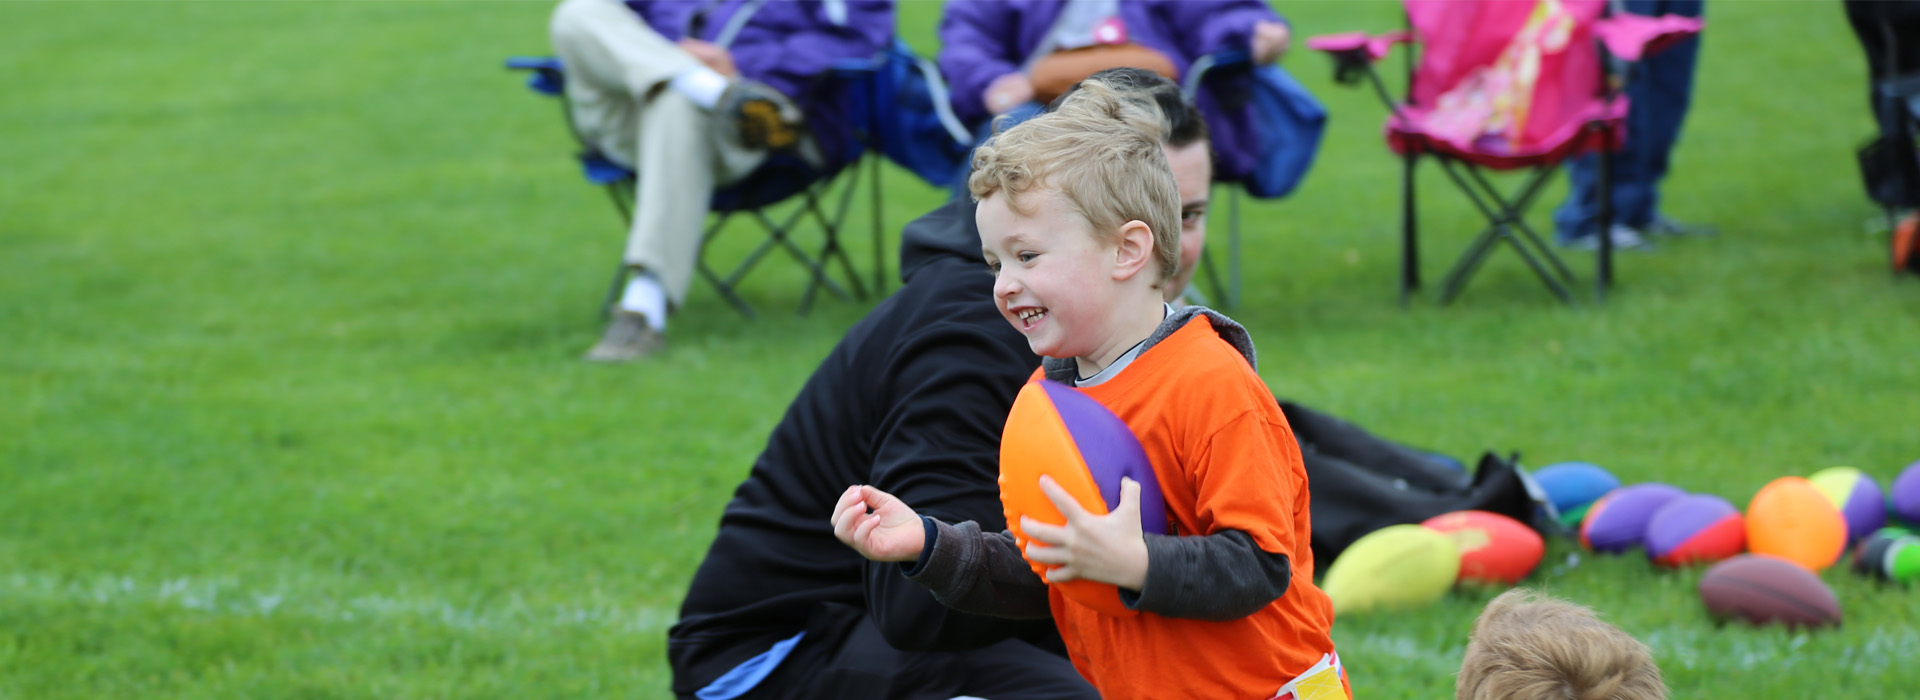 child playing flag football